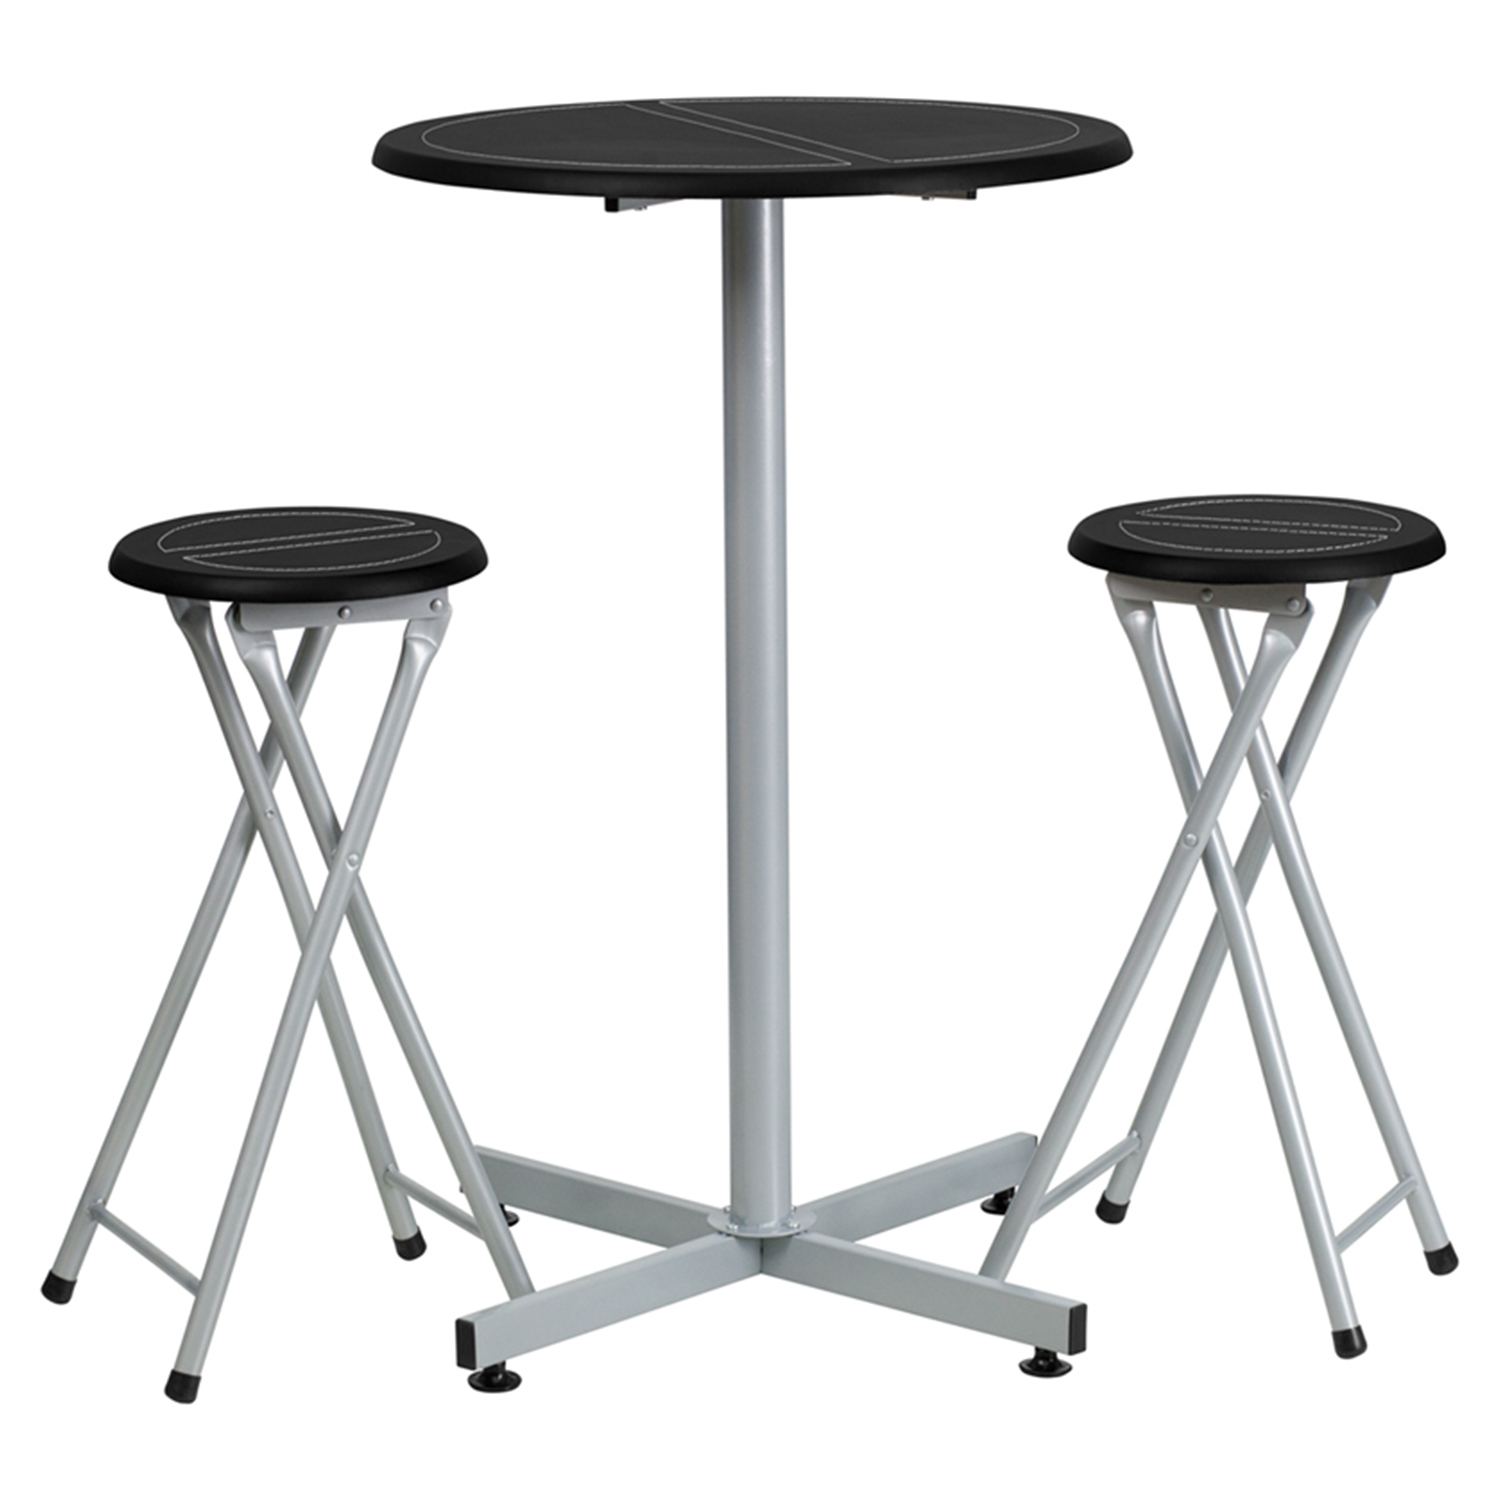 Bar Height Table And Stool Set   Silver, Black